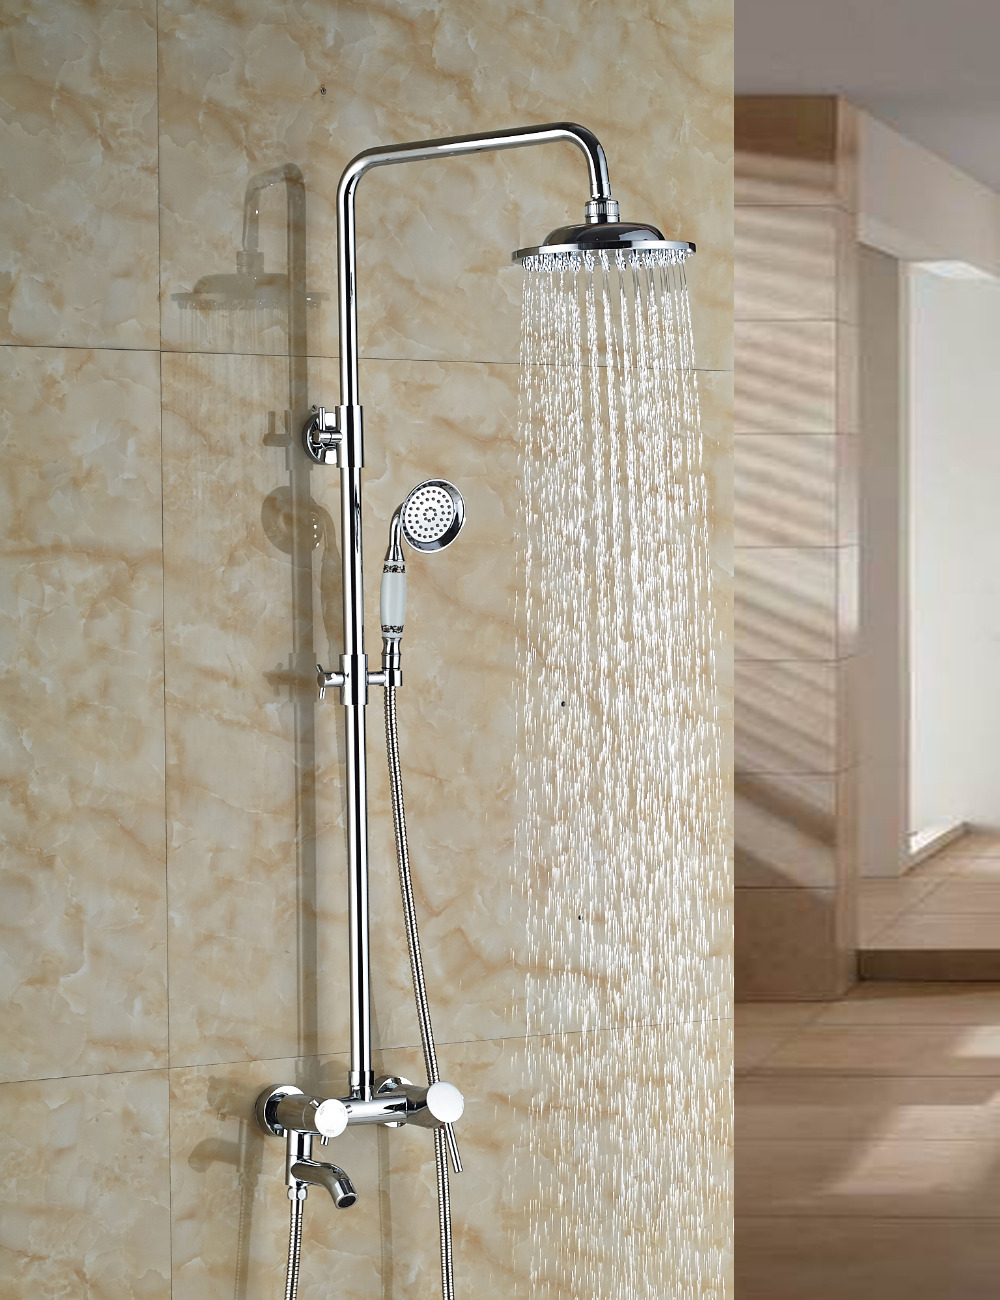 Wholesale And Retail Manufactory Sell Solid Brass Chrome Finish Shower Mixer Tap W/ Hand Shower Swivel Tub Spout Shower Column wholesale and retail polished chrome finish round rain shower head vavle mixer tap swivel spout w hand sprayer